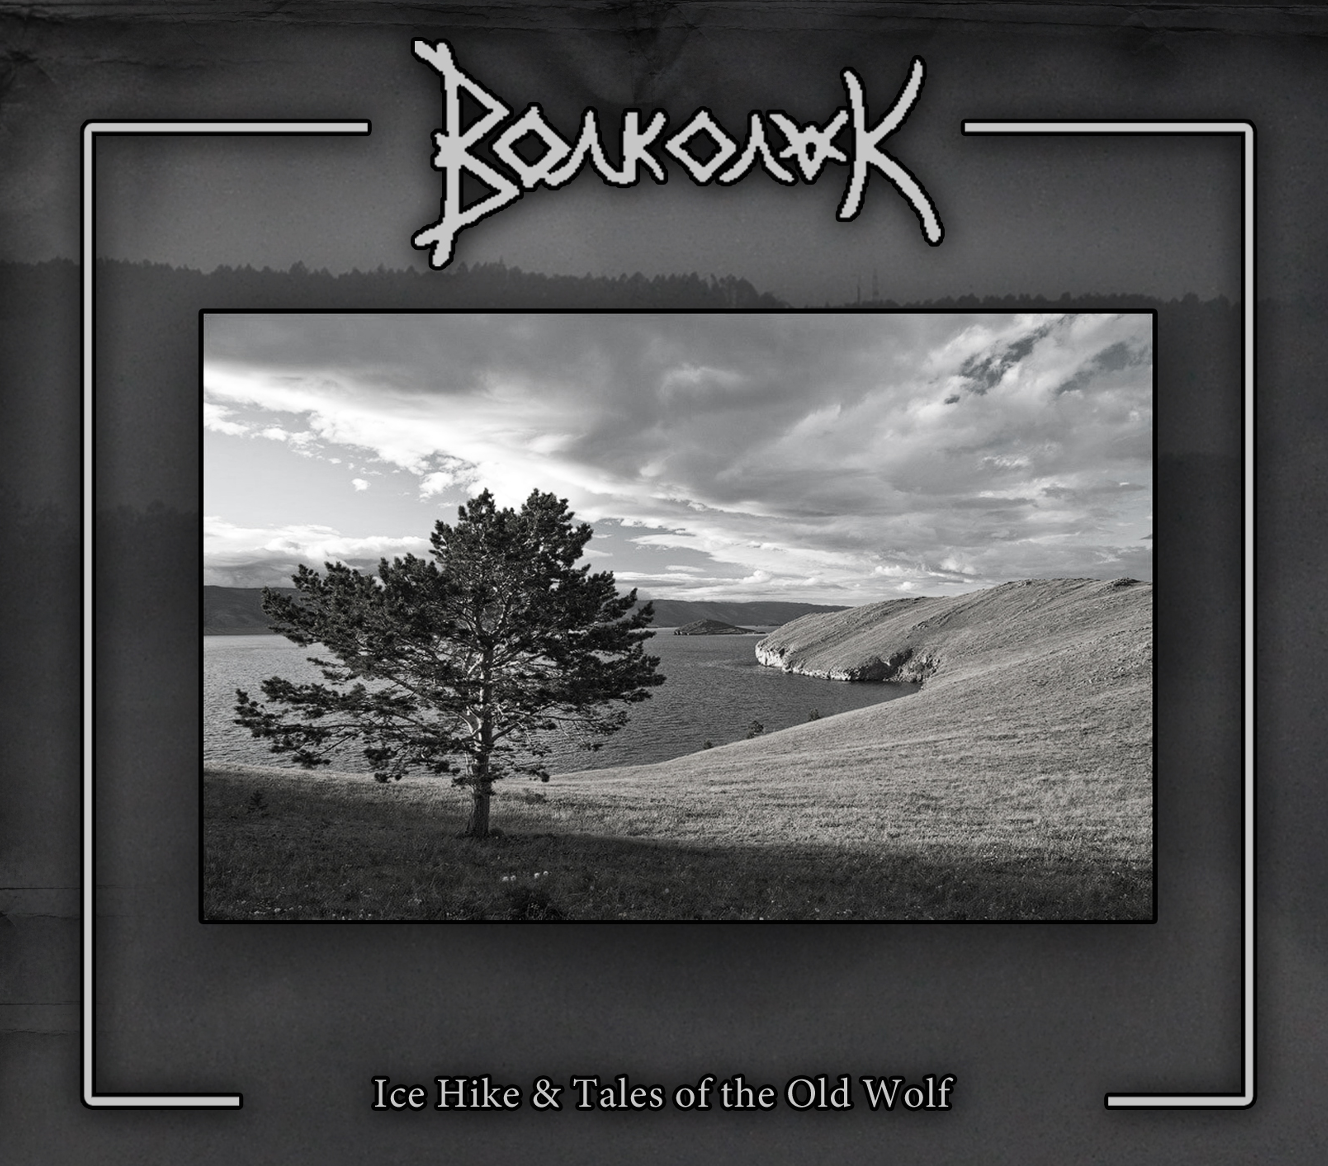 VOLKOLAK - Ice Hike & Tales of the Old Wolf